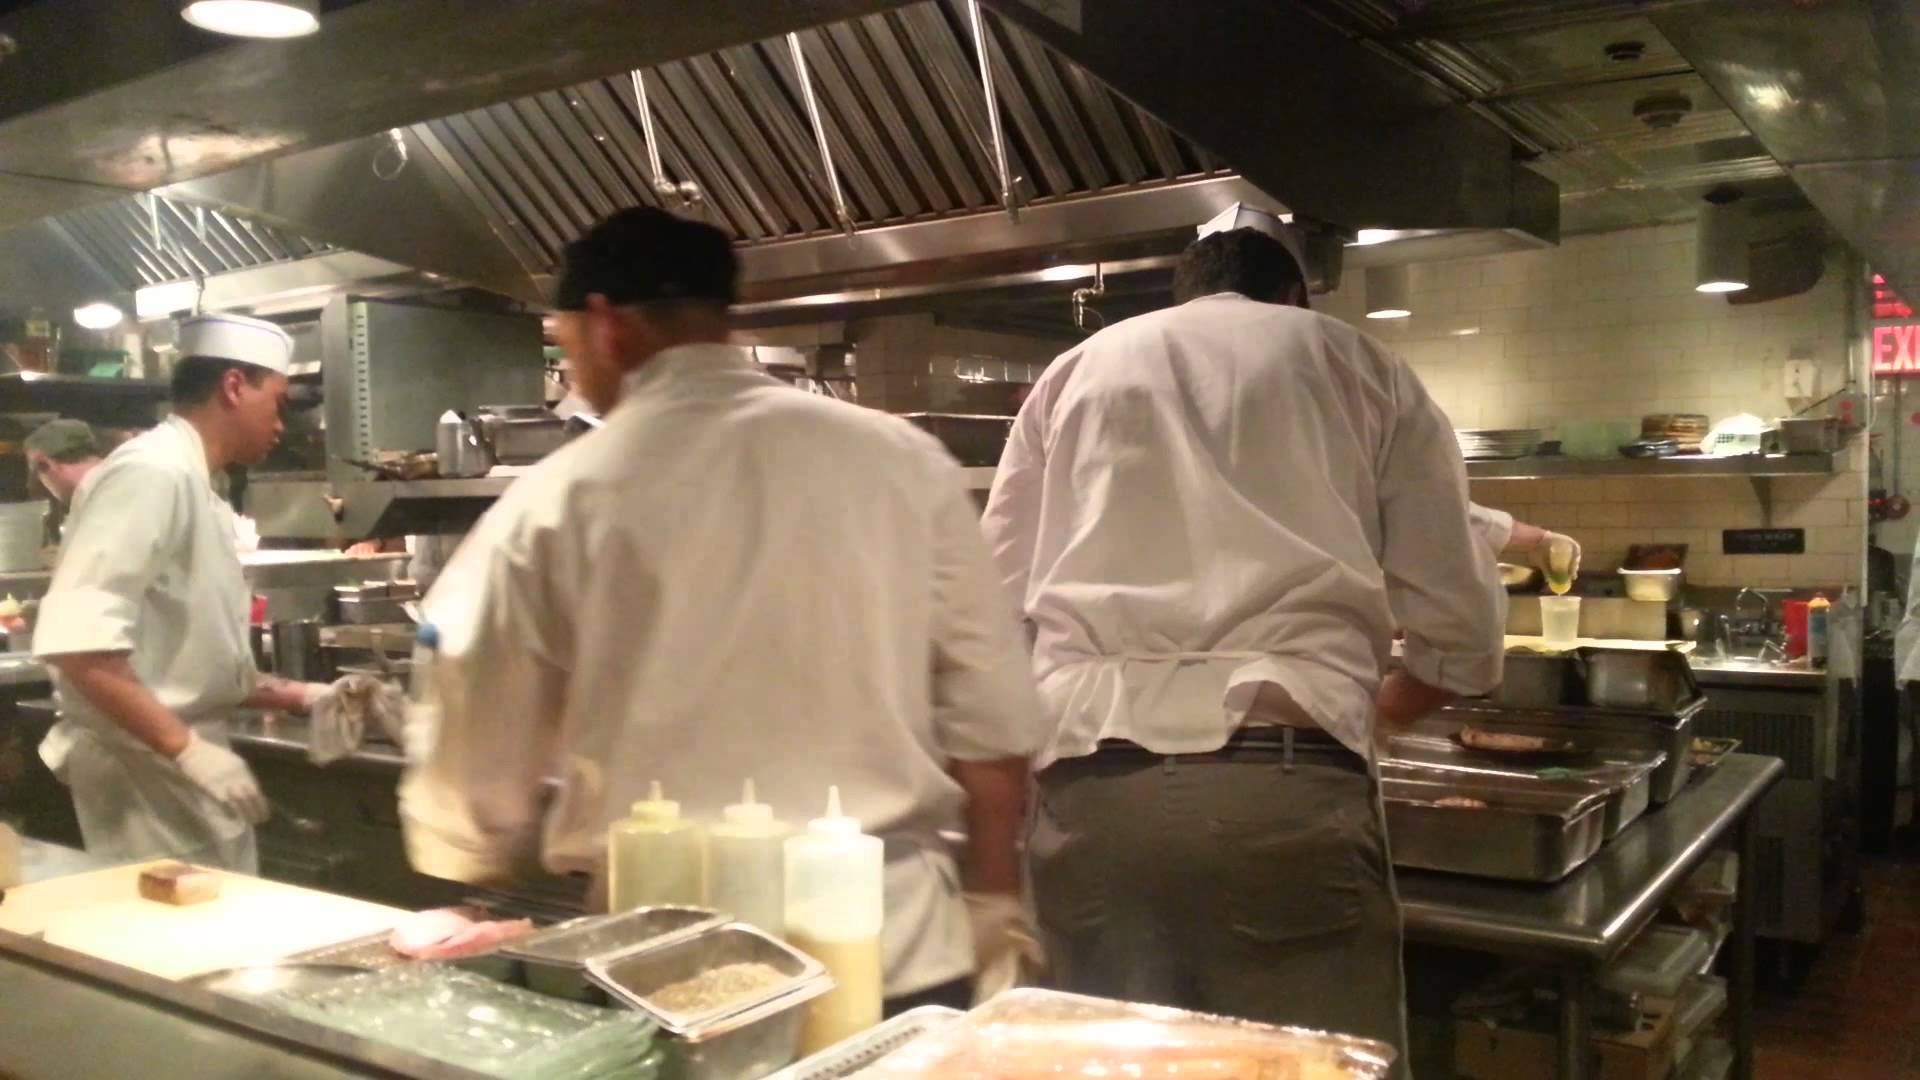 busy kitchen servers